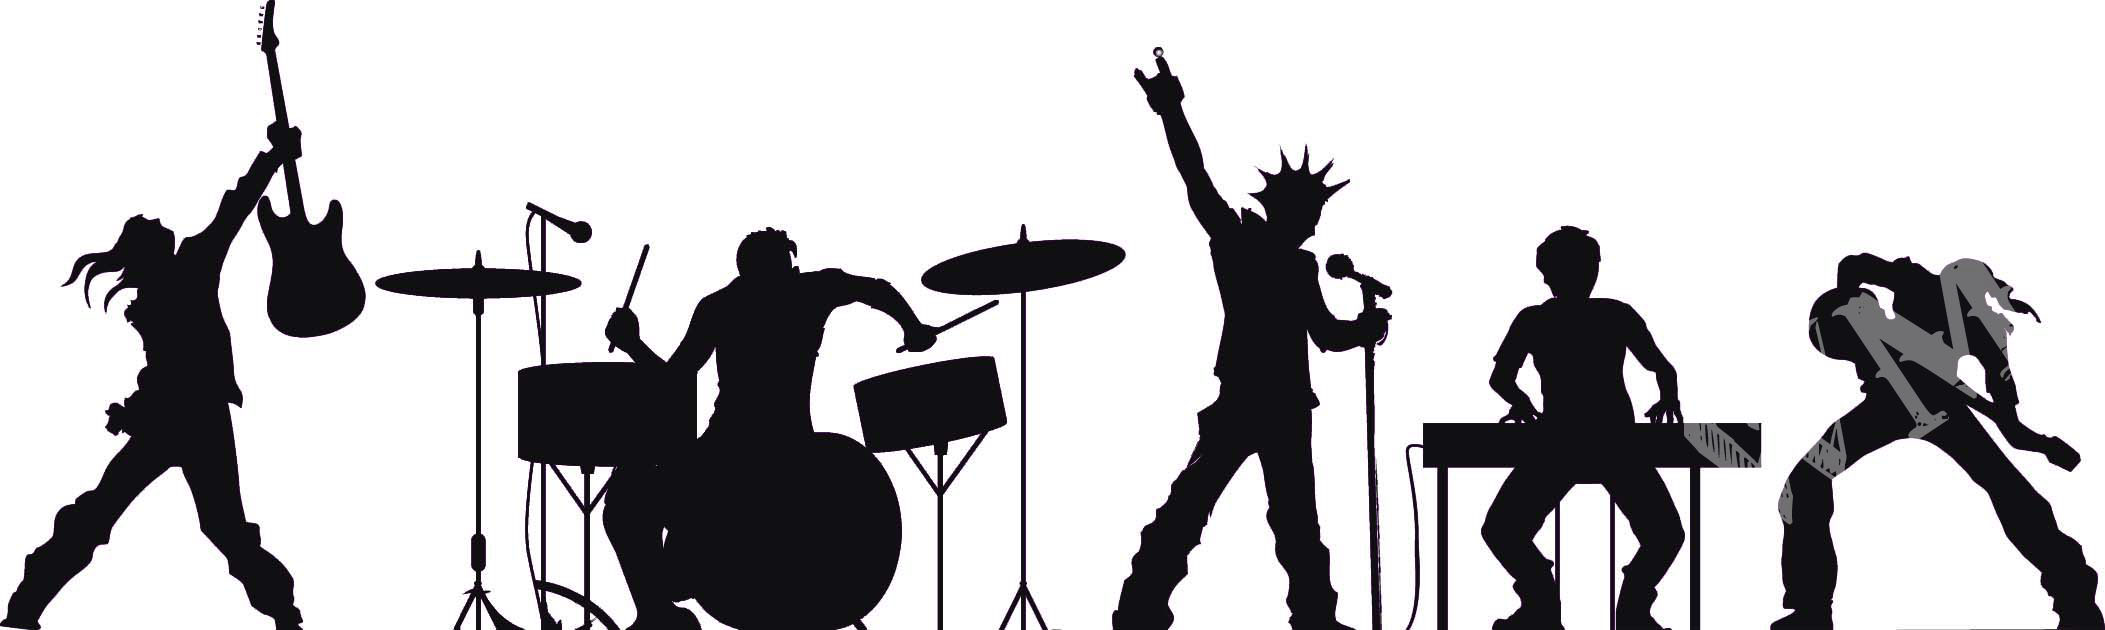 Band clipart silhouette. Free cliparts download clip